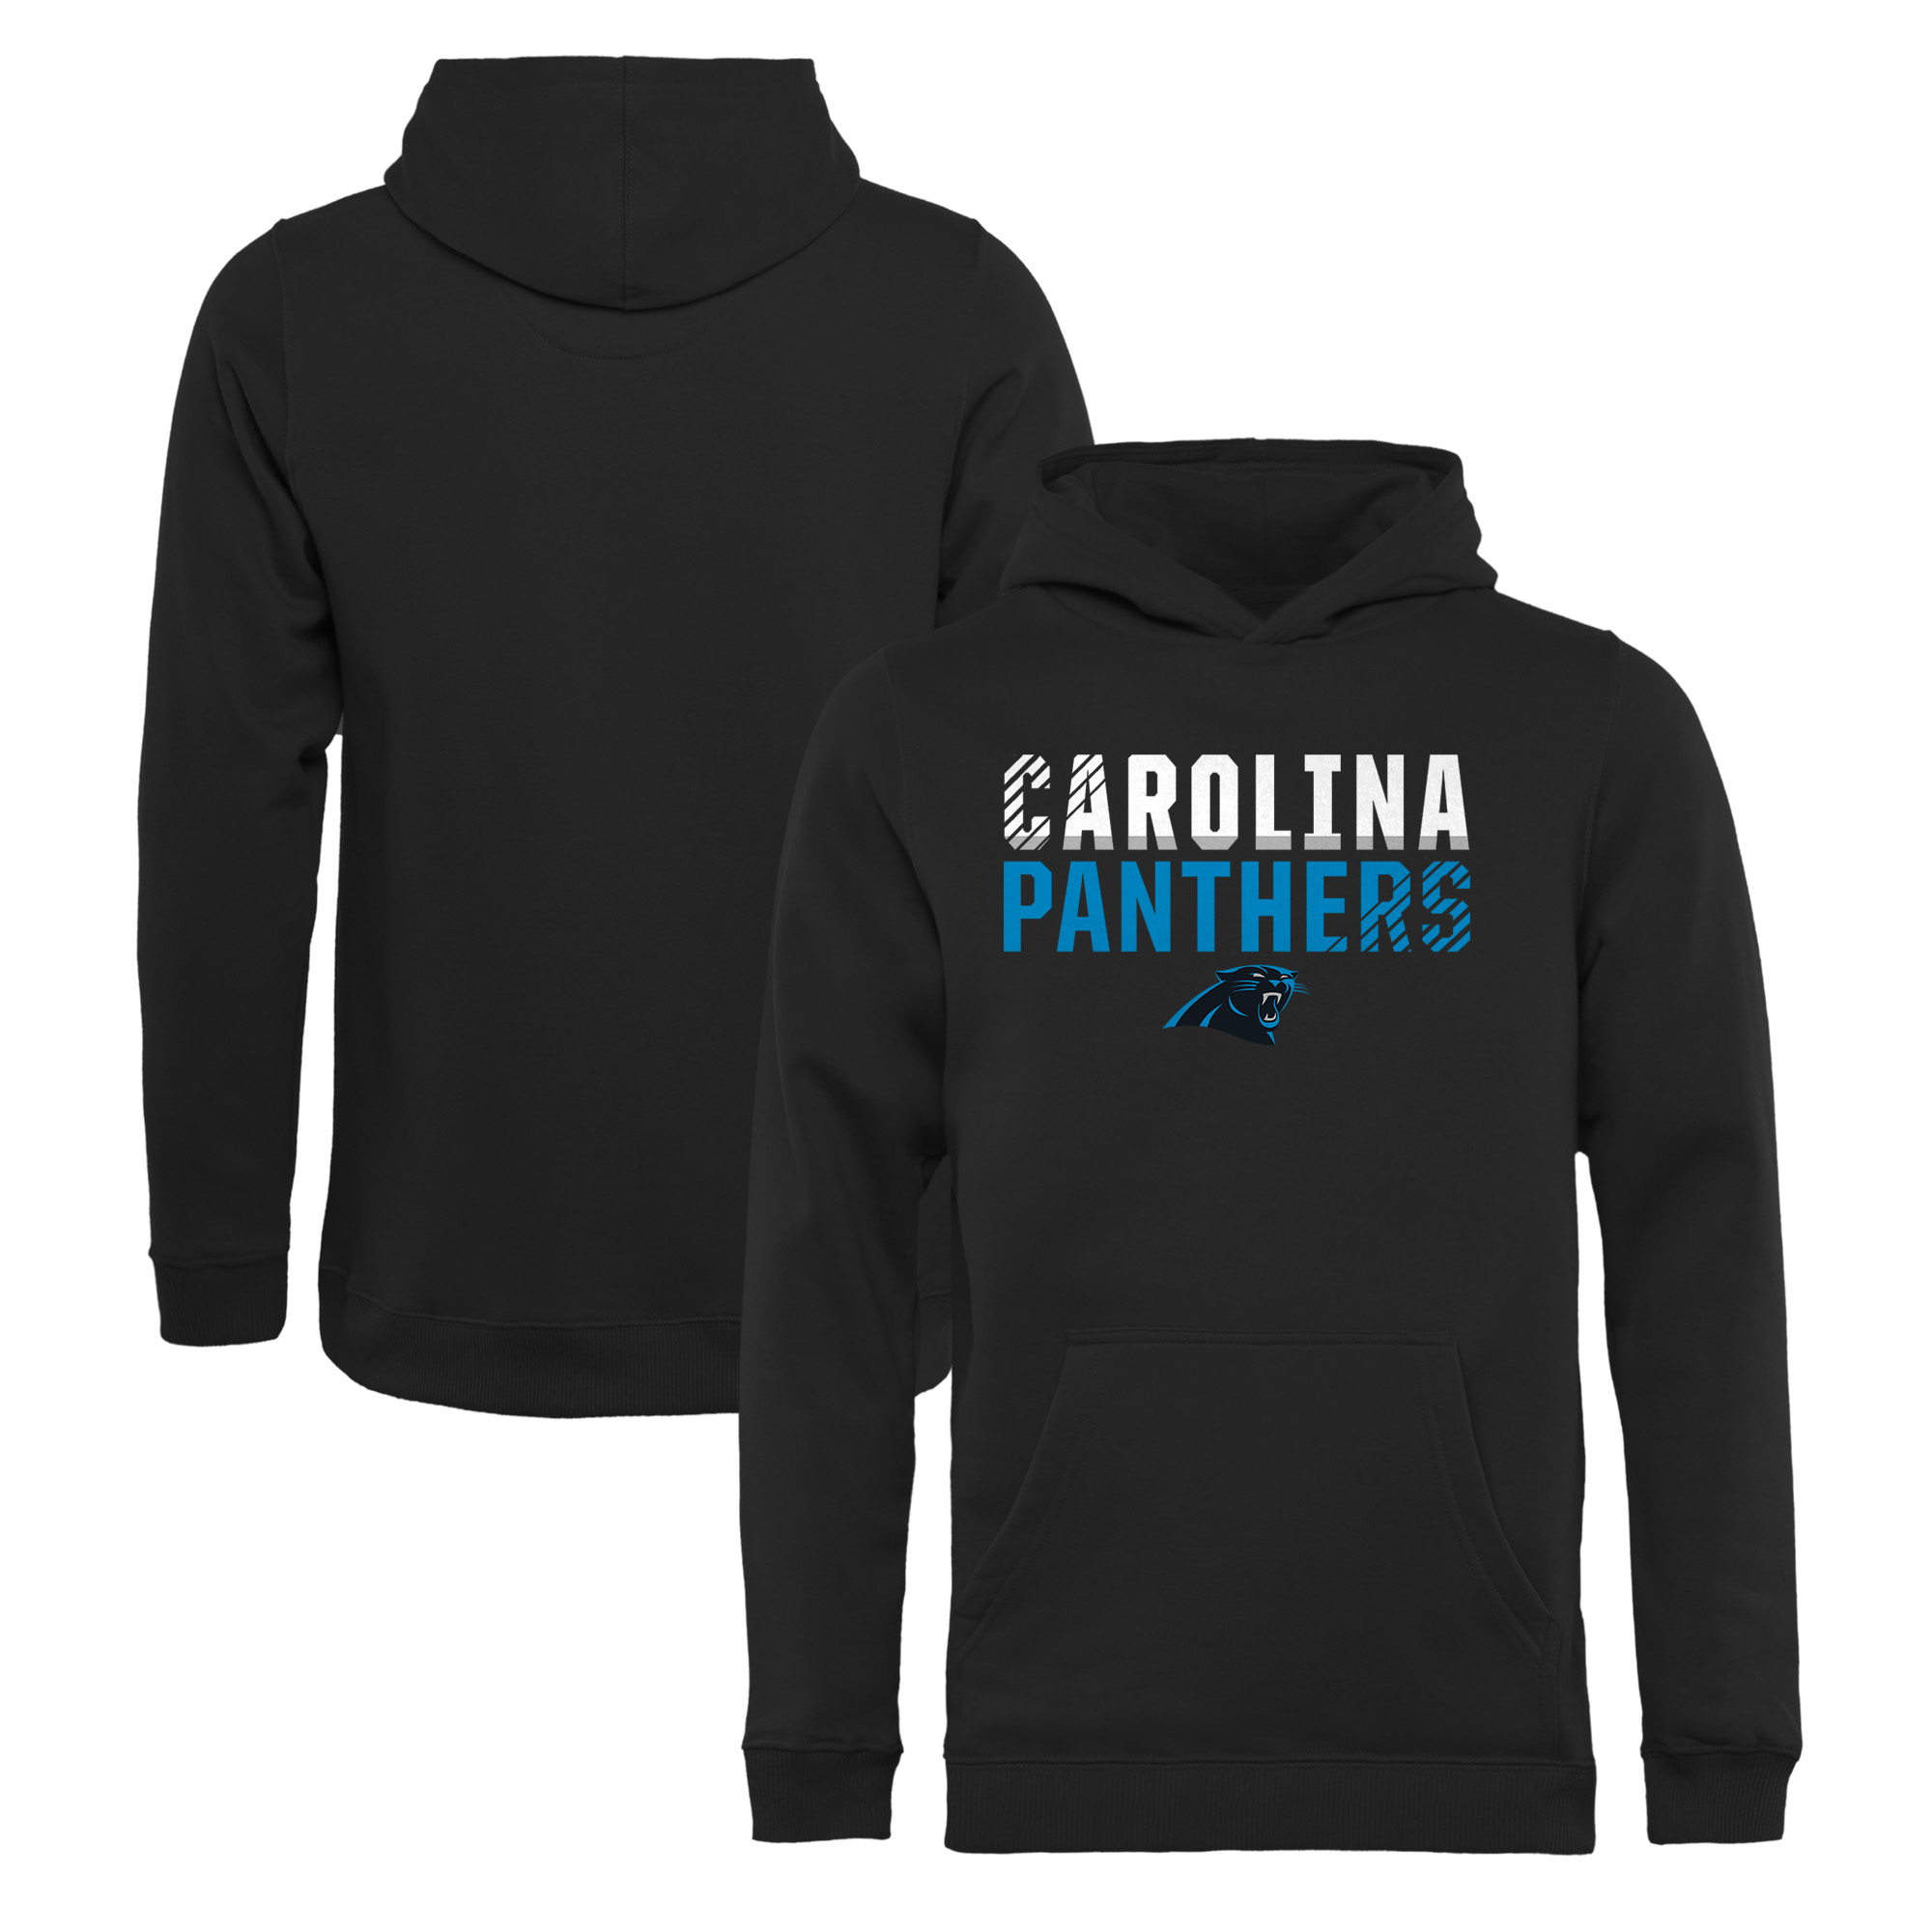 Carolina Panthers NFL Pro Line by Fanatics Branded Youth Iconic Collection Fade Out Pullover Hoodie - Black